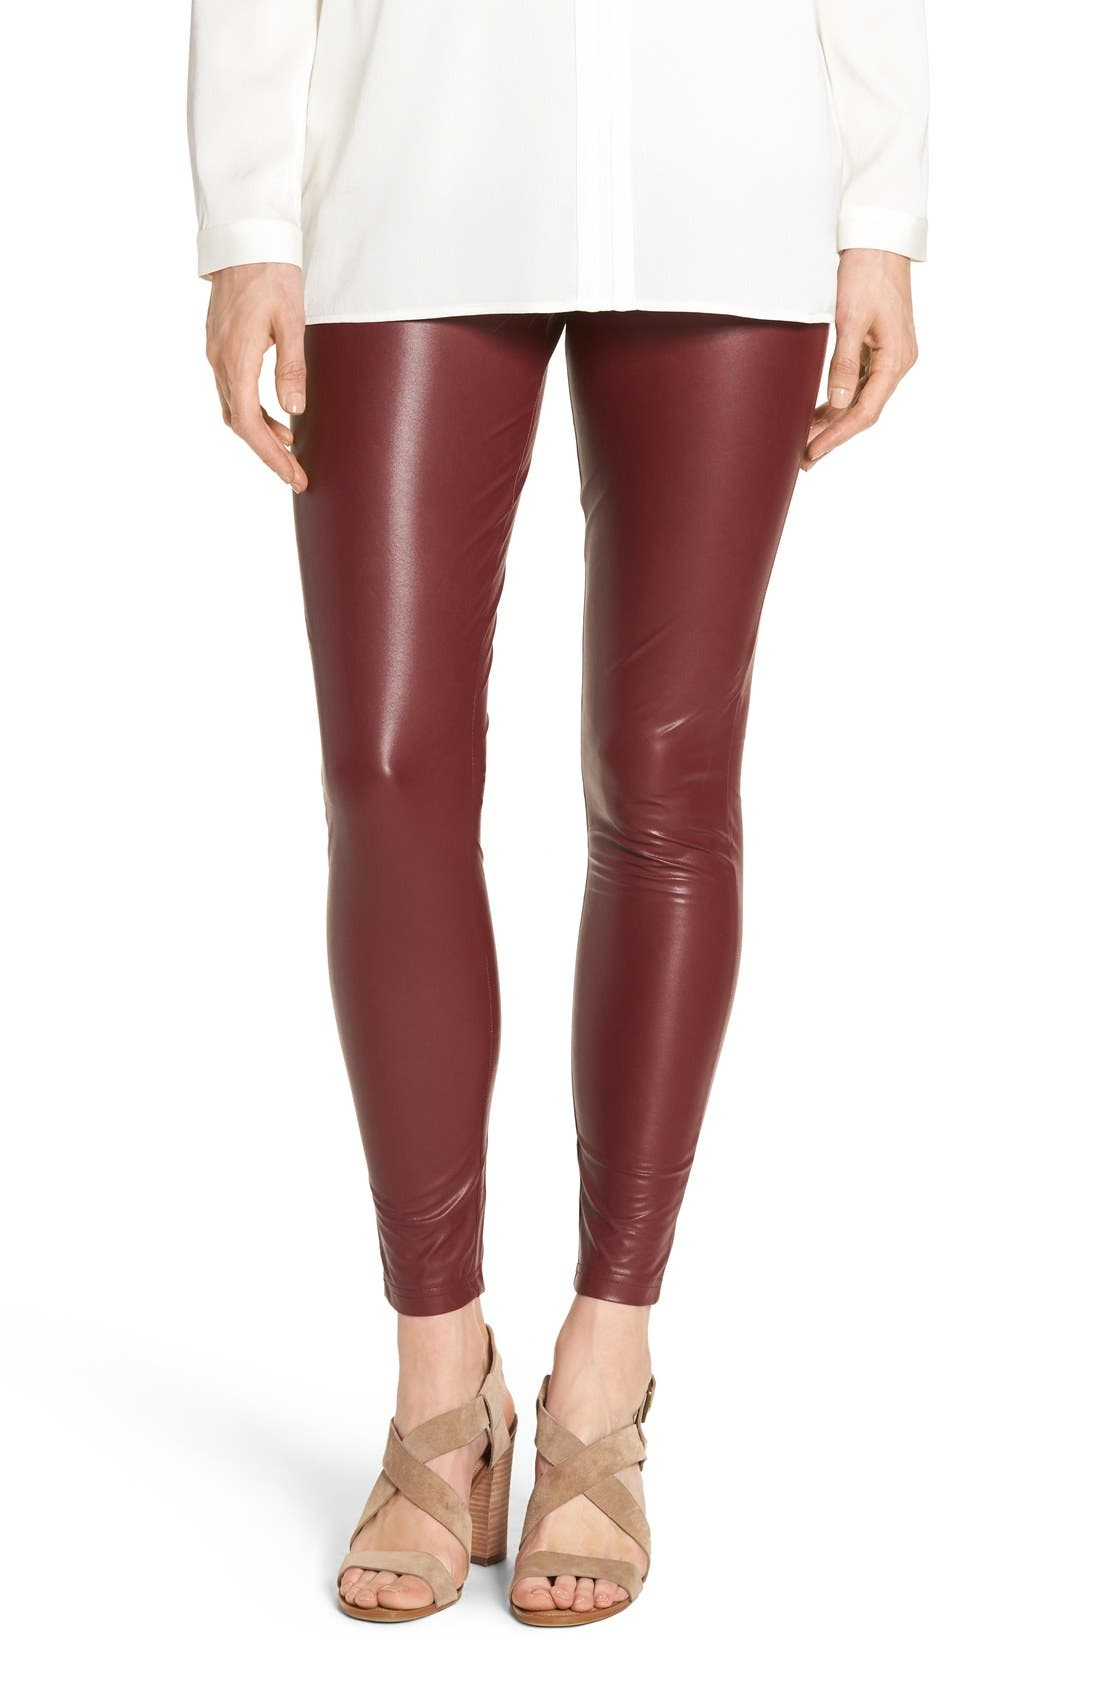 Alternate Image 1 Selected - Hue 'Leatherette' Faux Leather Leggings